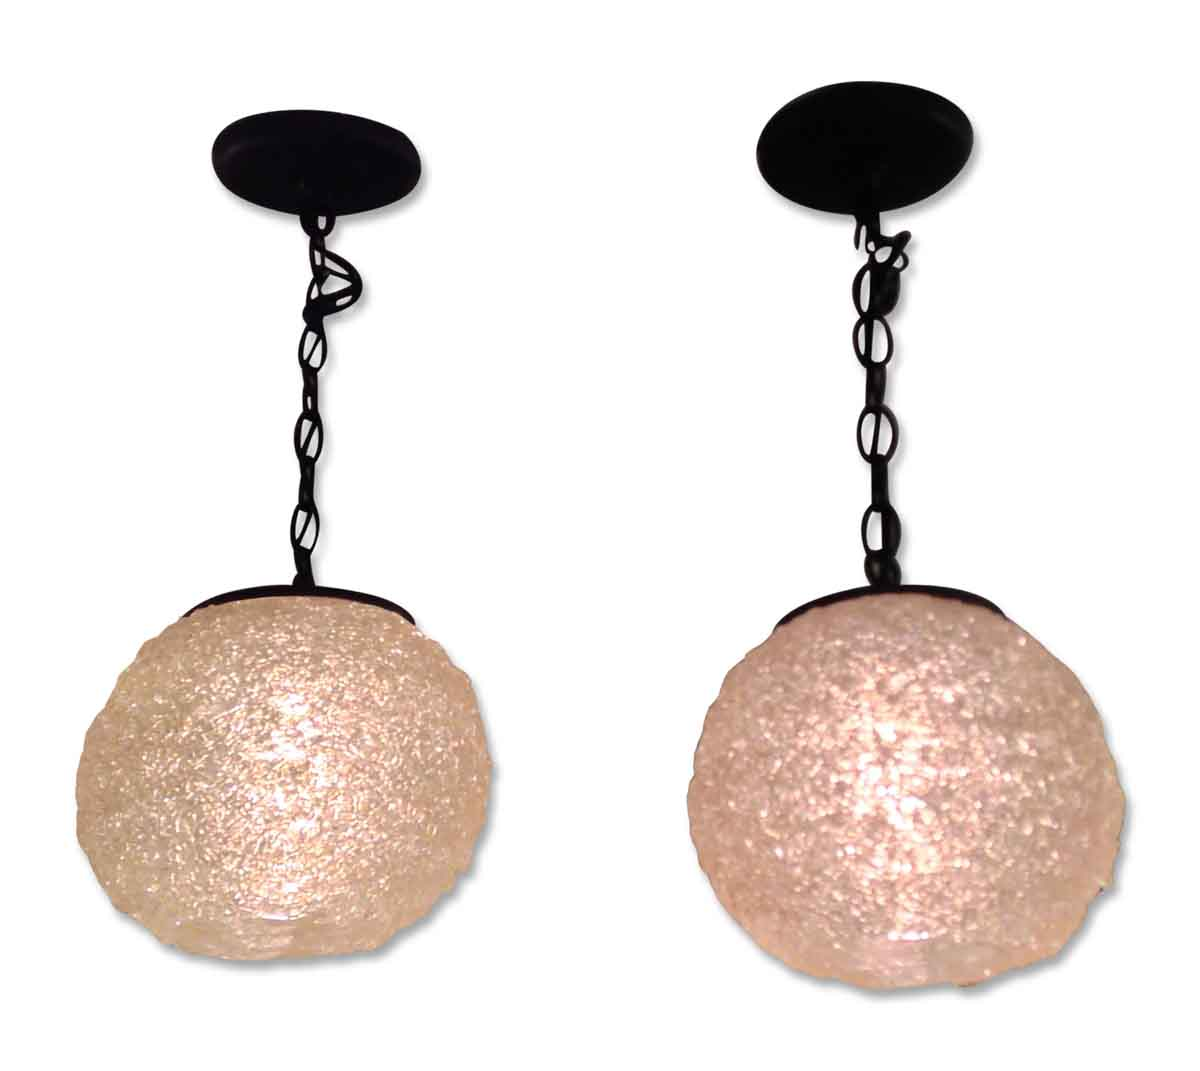 Acrylic Ball Mid Century Pendant Lights